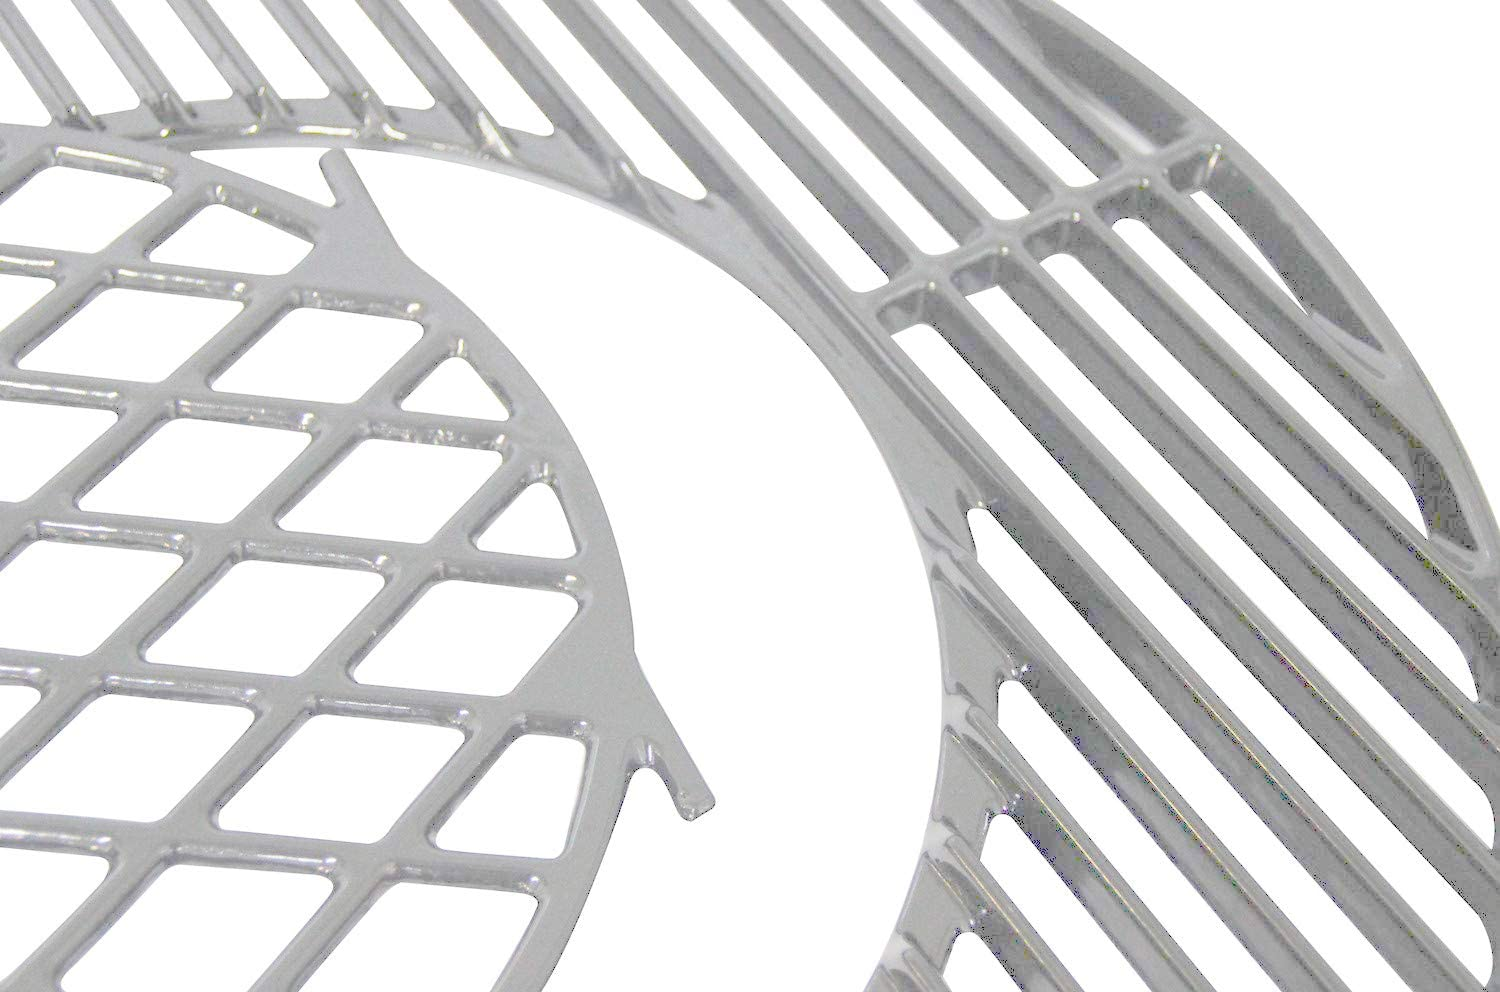 22.5 Charcoal Smoker 22.5 Weber Master-Touch Votenli S883E Stainless Steel Cooking Grid Grates Replacement for Weber 22.5 Weber Smokey Mountain Cooker 1-Pack